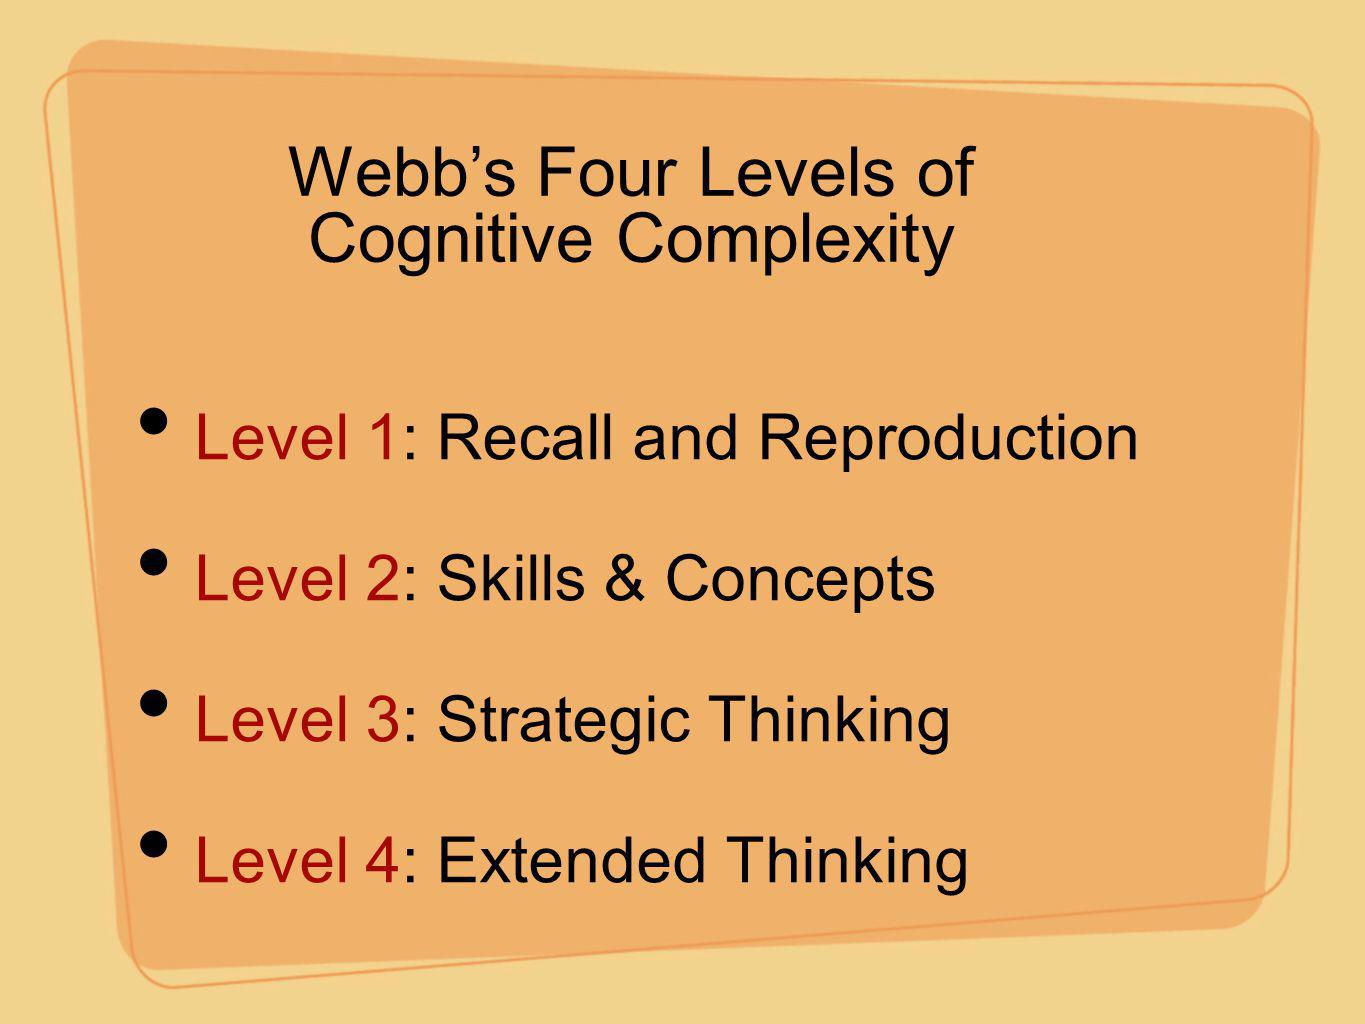 Webb's Four Levels of Cognitive Complexity